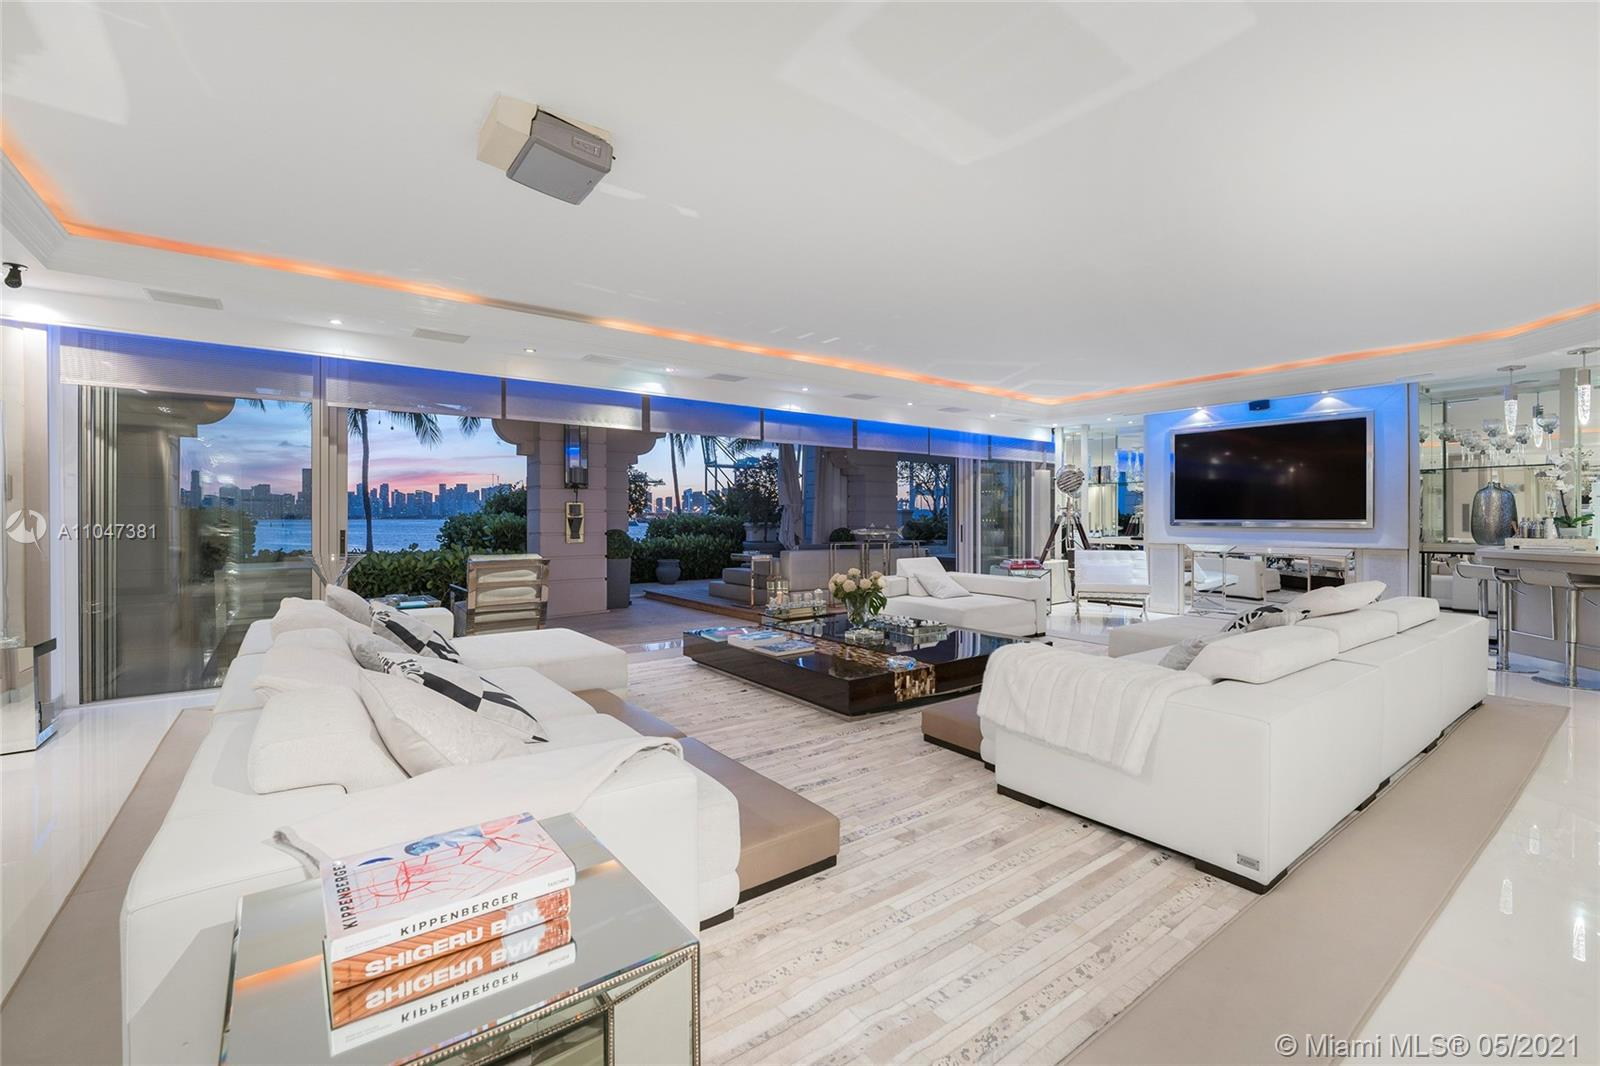 This coveted ground floor Bayview unit offers the best of Fisher Island with unobstructed views to Biscayne Bay & Downtown Miami Skyline, plus amazing sunset views. The 5BR/5+2 BA unit features 6,260 SF, exquisite white porcelain floors, FENDI designed wallpaper & doors plus a built-in surround sound system. Spacious open living room w/wet bar & dining room both w/direct bay views. Amazing Chef's kitchen sports top-of-the-line Miele & Sub-Zero appliances, eat-in center island, butler's pantry & breakfast area. Private bayside principal suite offers tan oak floors & bathroom w/dual walk-in closets, glass rainshower & a sunken spa tub. Expansive bayside terrace w/multiple seating & lounging areas, al fresco dining table & arches that frame stunning views to the bay & Downtown Miami skyline.